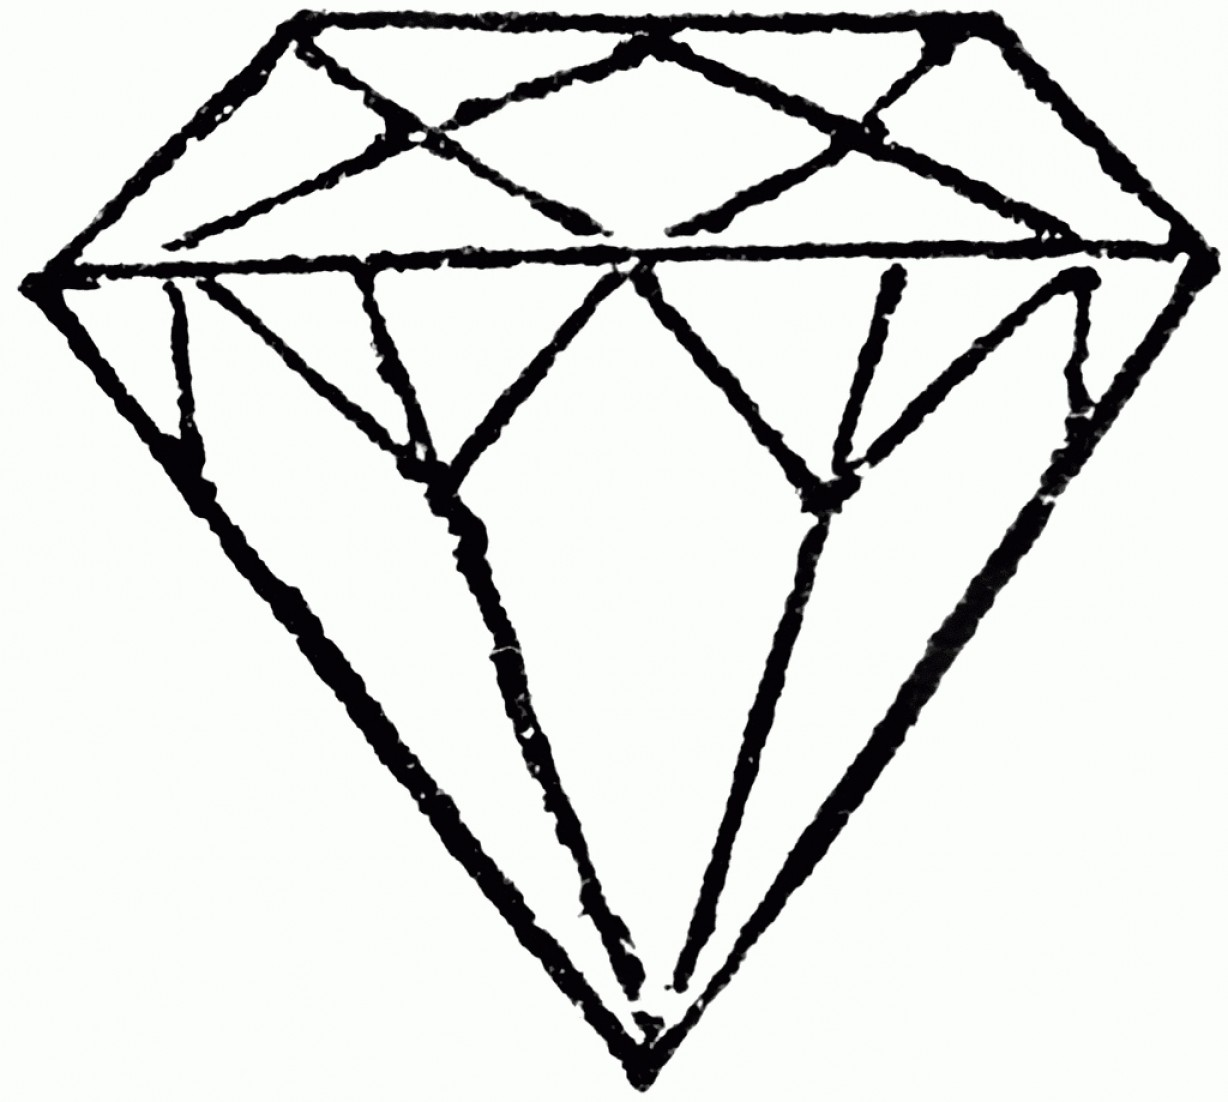 1228x1102 D Diamond Drawing How To Draw A D Diamond Pencil Art Drawing